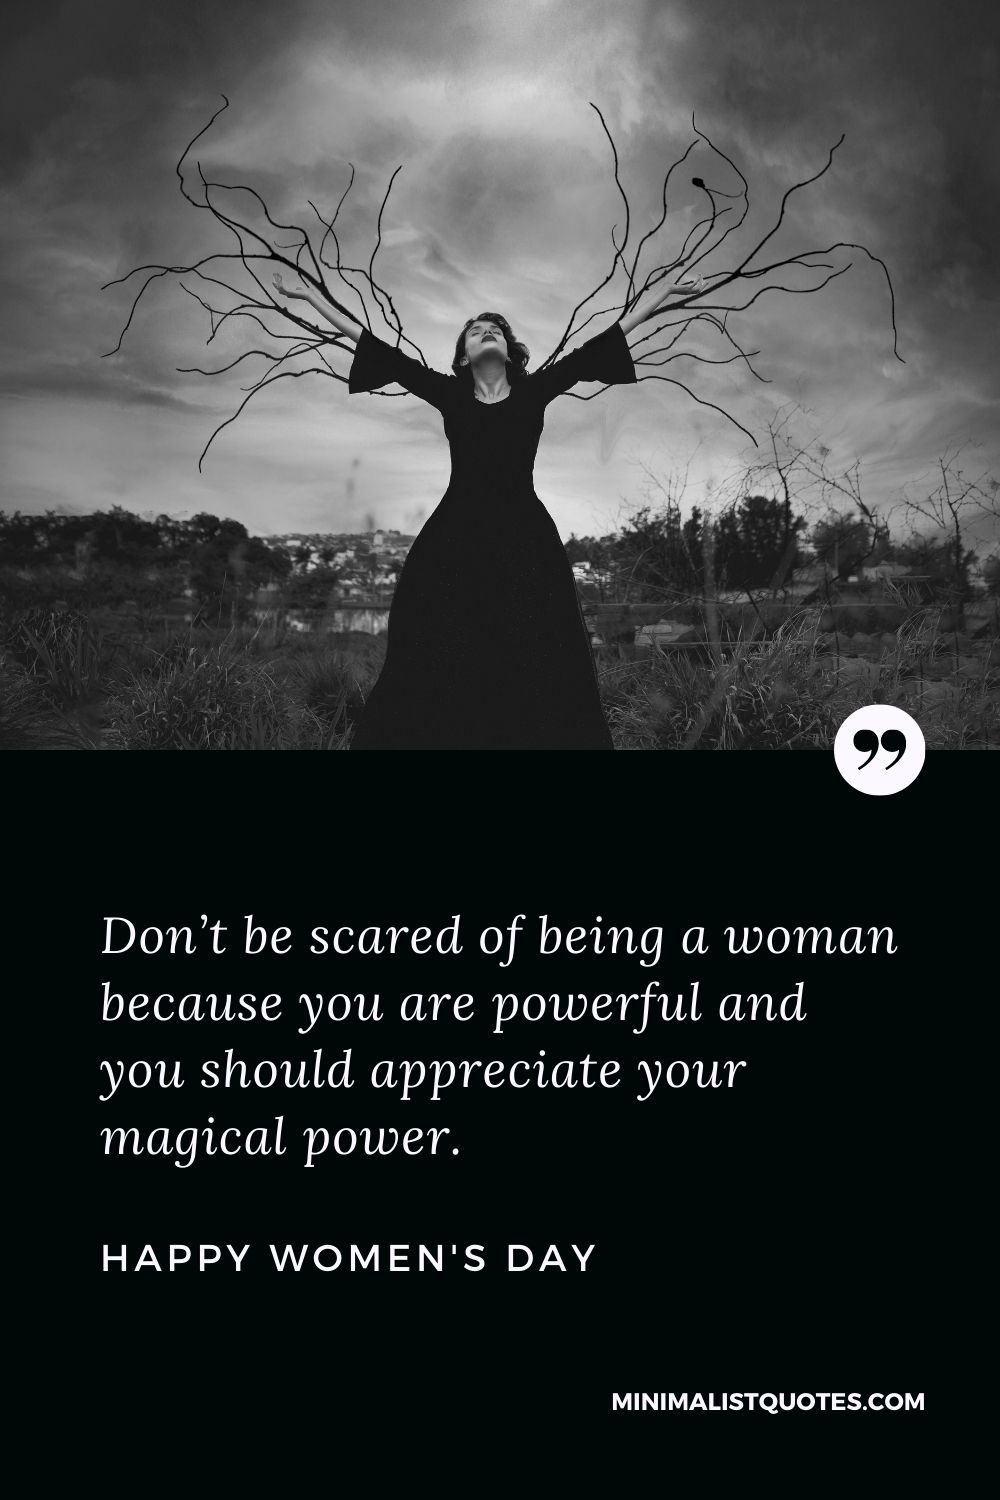 Women's Day Wish & Message With Image: Don't be scared of being a woman because you are powerful and you should appreciate your magical power. Happy Women's Day!